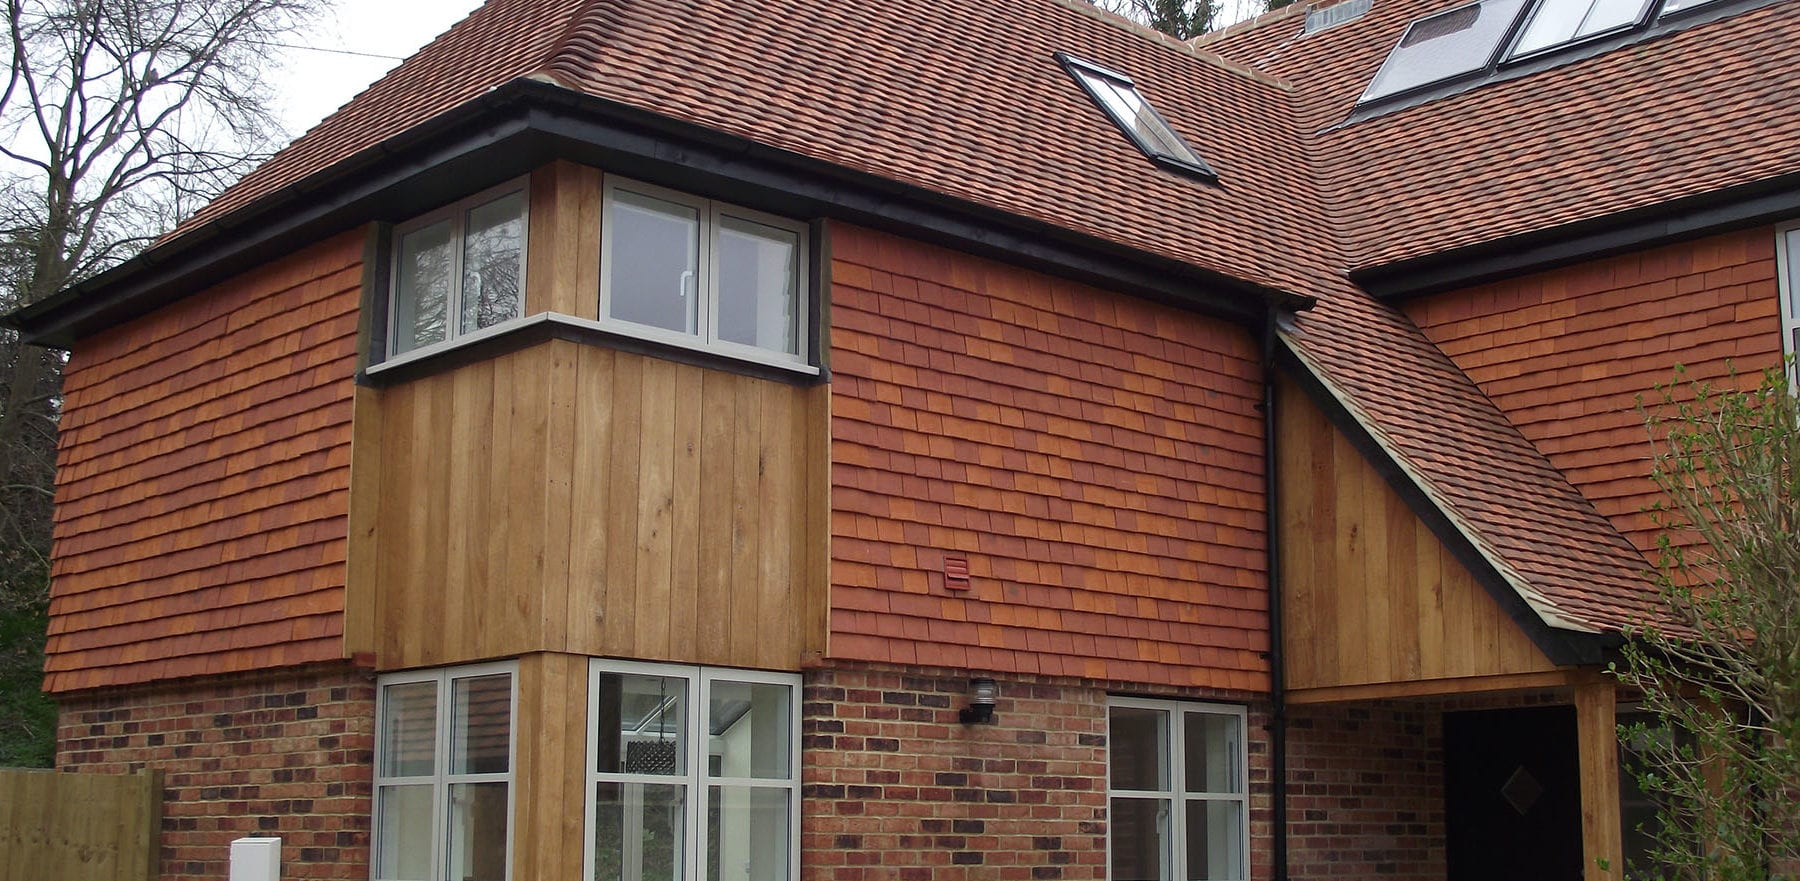 Lifestiles - Handcrafted Orange Clay Roof Tiles - Liss, England 2